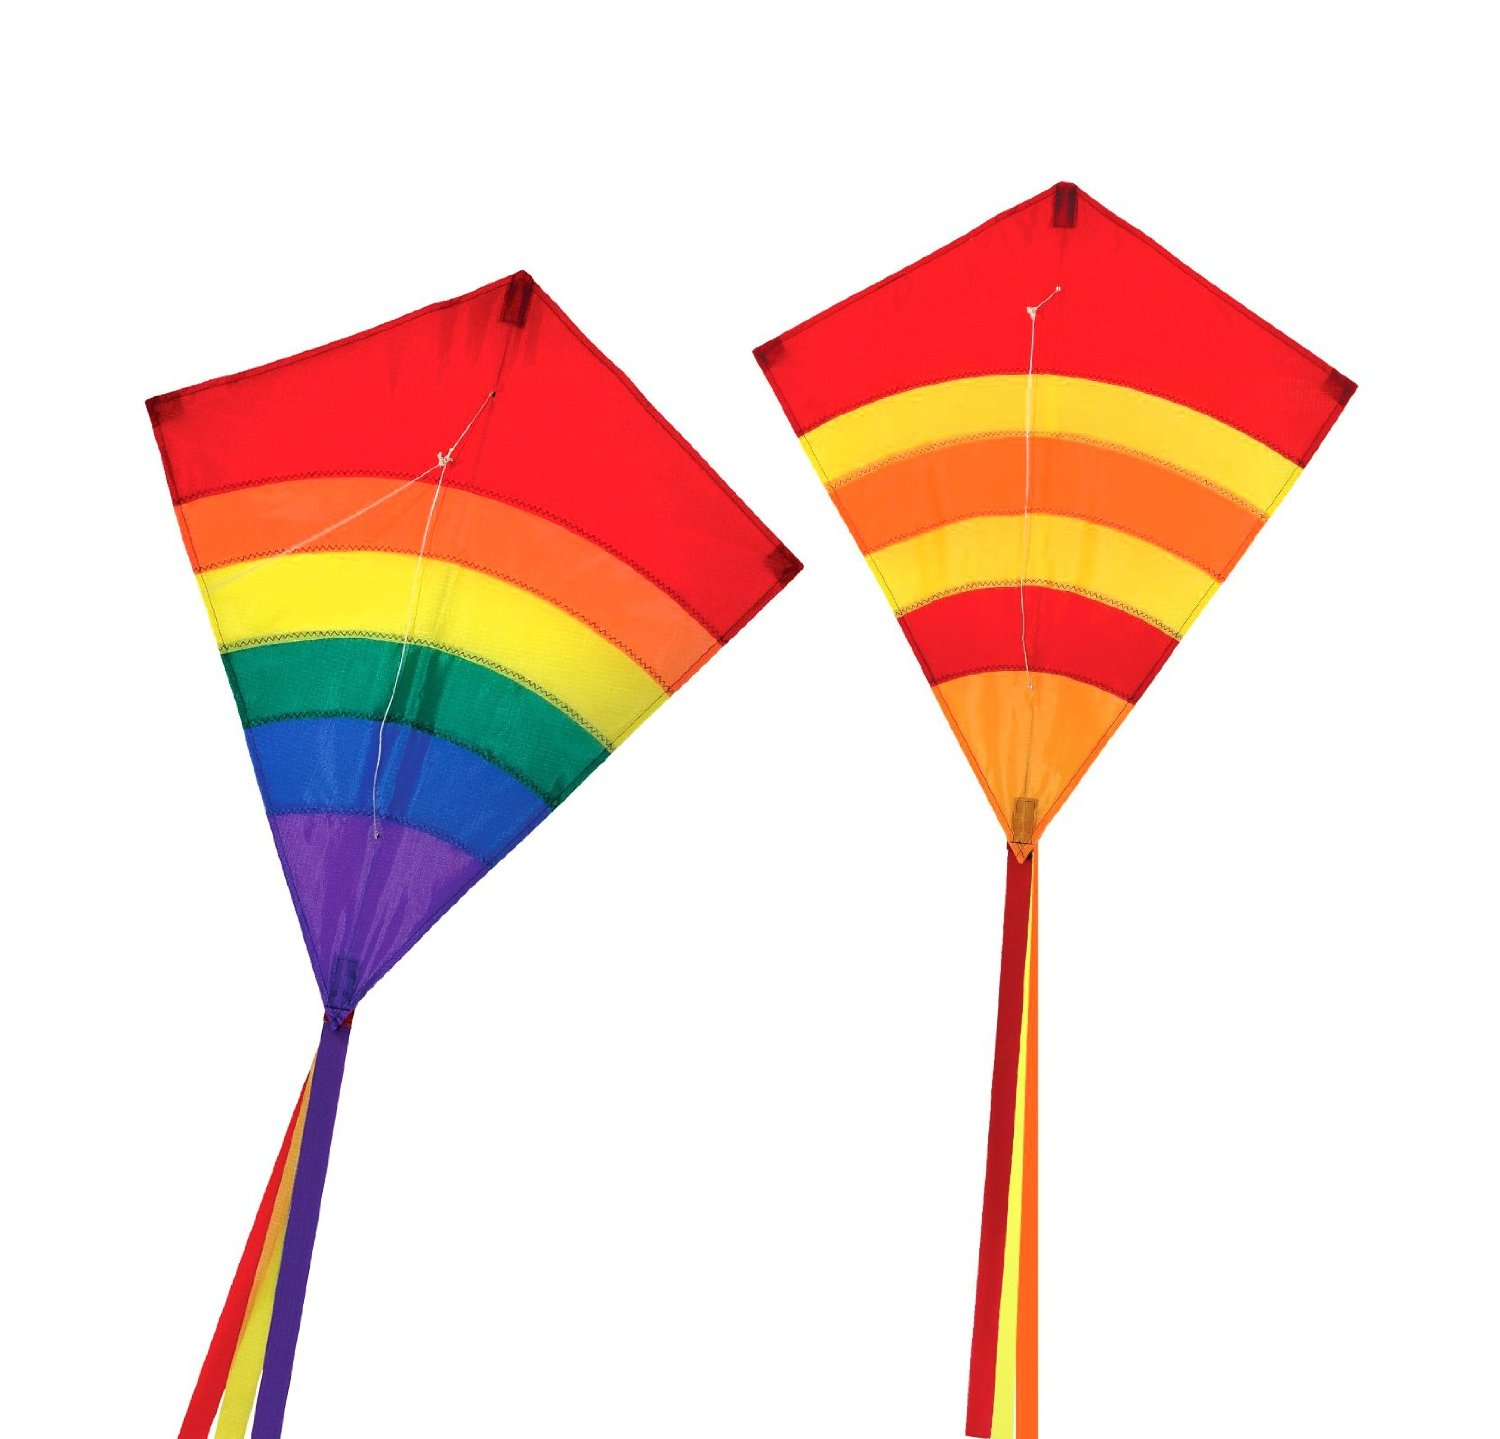 Maven Gifts: In The Breeze 2-Pack Kite Bundle – 27-Inch Hot Arch Diamond Kite with 27-Inch Rainbow Arch Diamond Kite – Great for Beginners and Kids